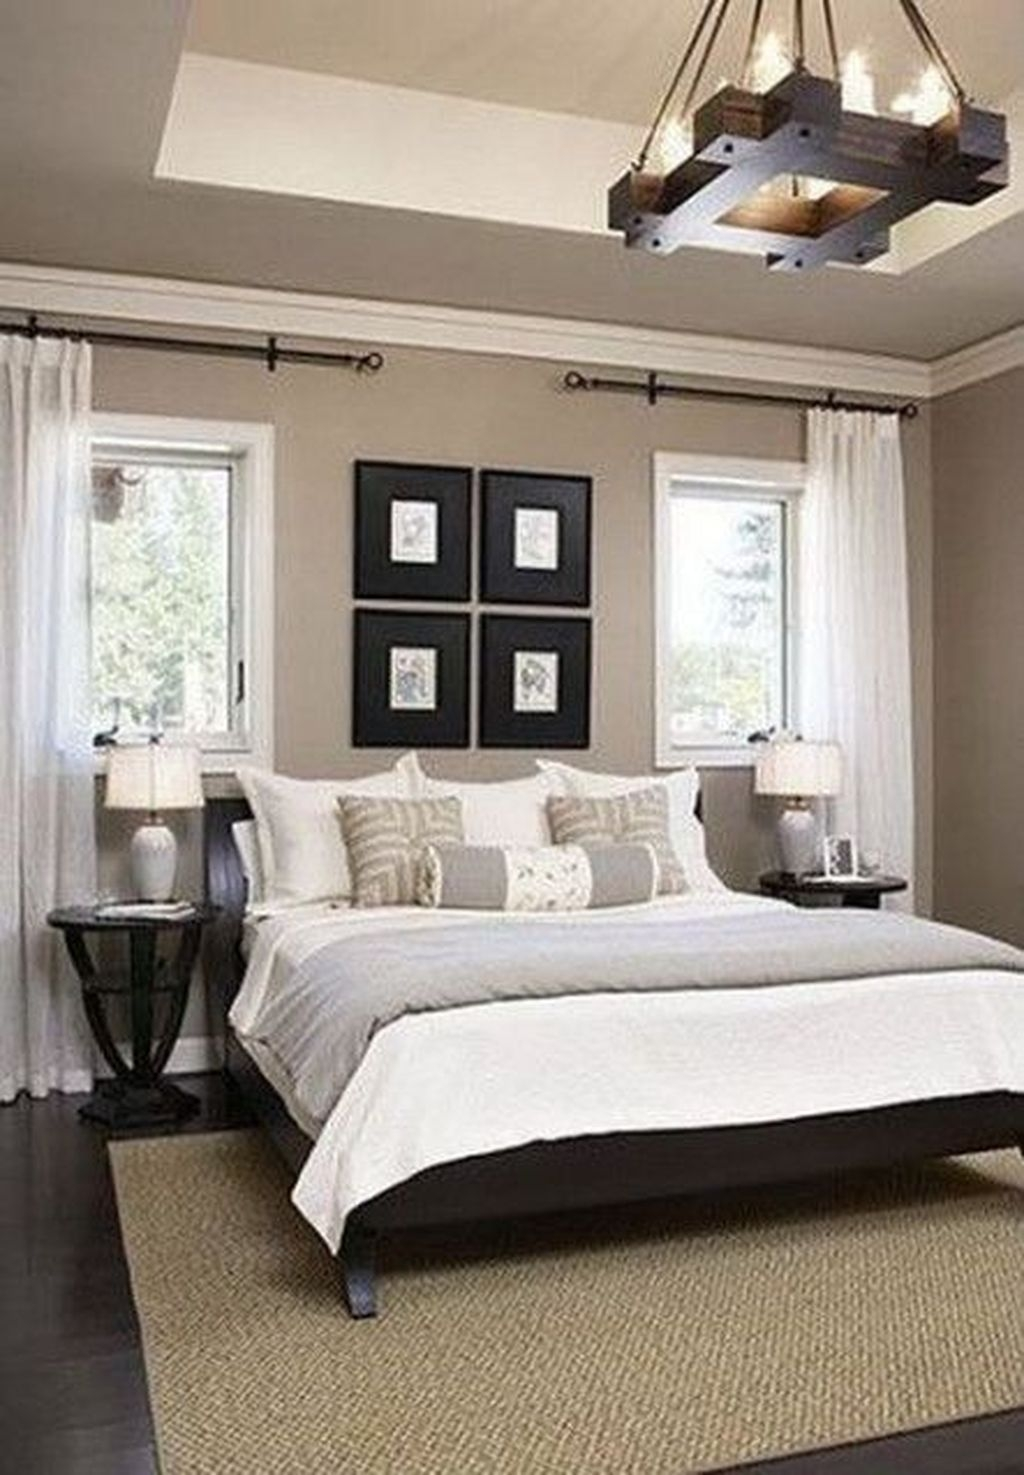 Cute Chandeliers Decoration Ideas For Your Bedroom07